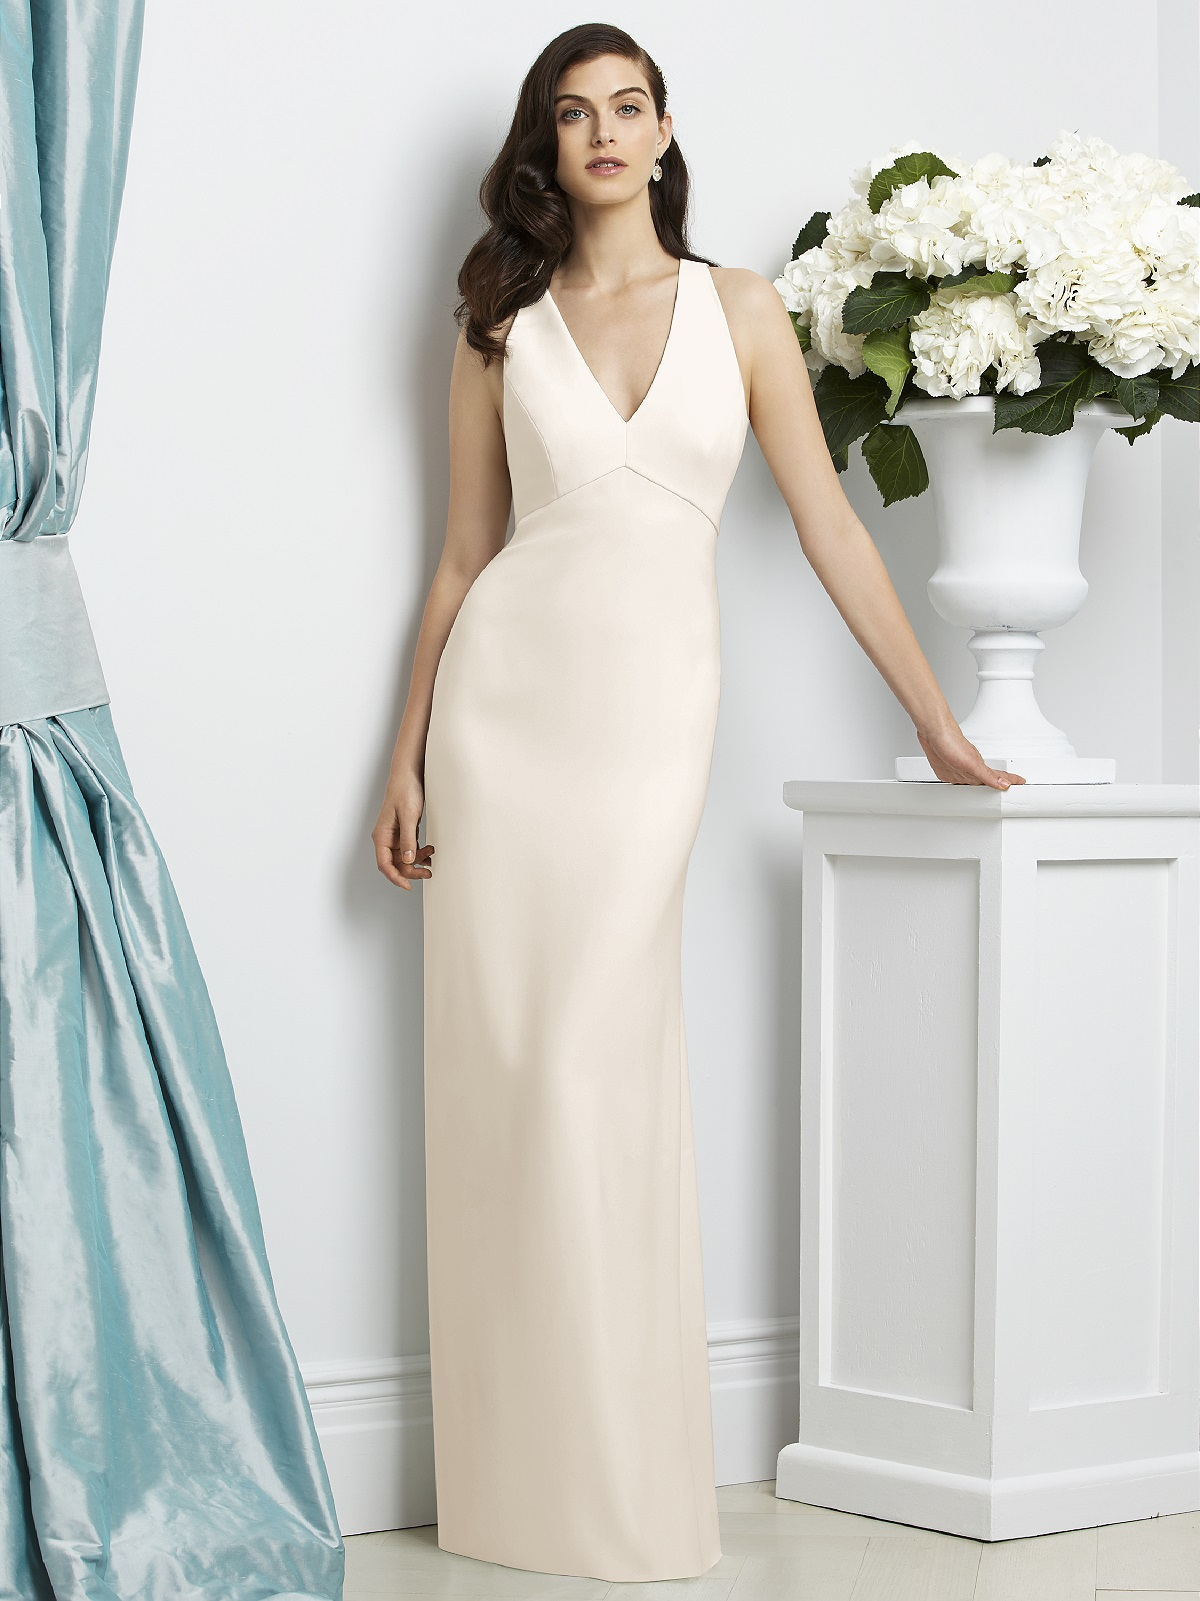 New wedding dresses for young: Alfred sung after six bridesmaid dresses